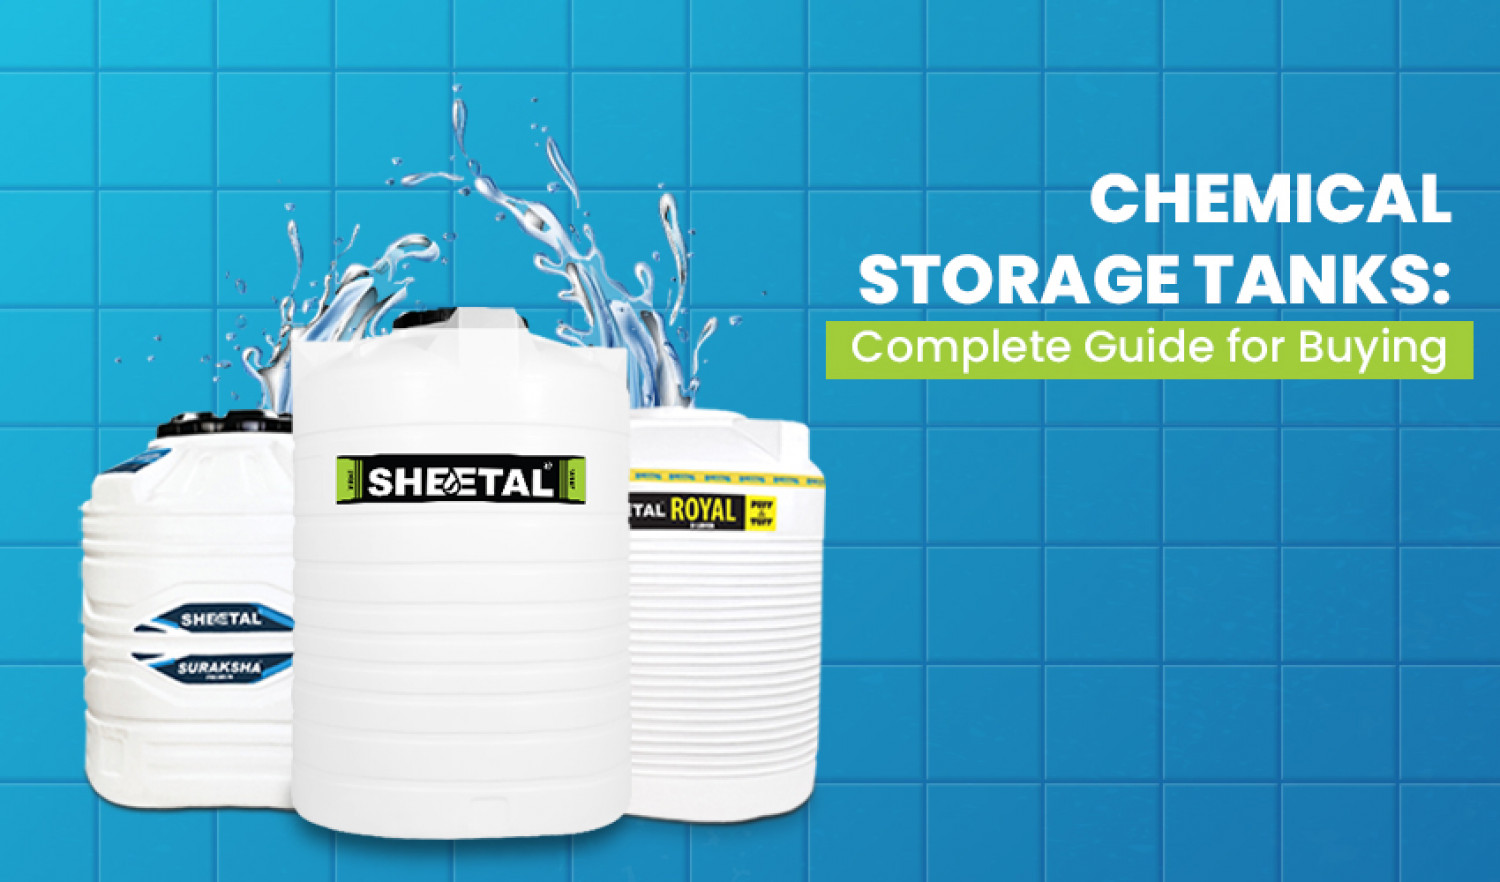 Chemical Storage Tanks: Complete Guide for Buying Infographic